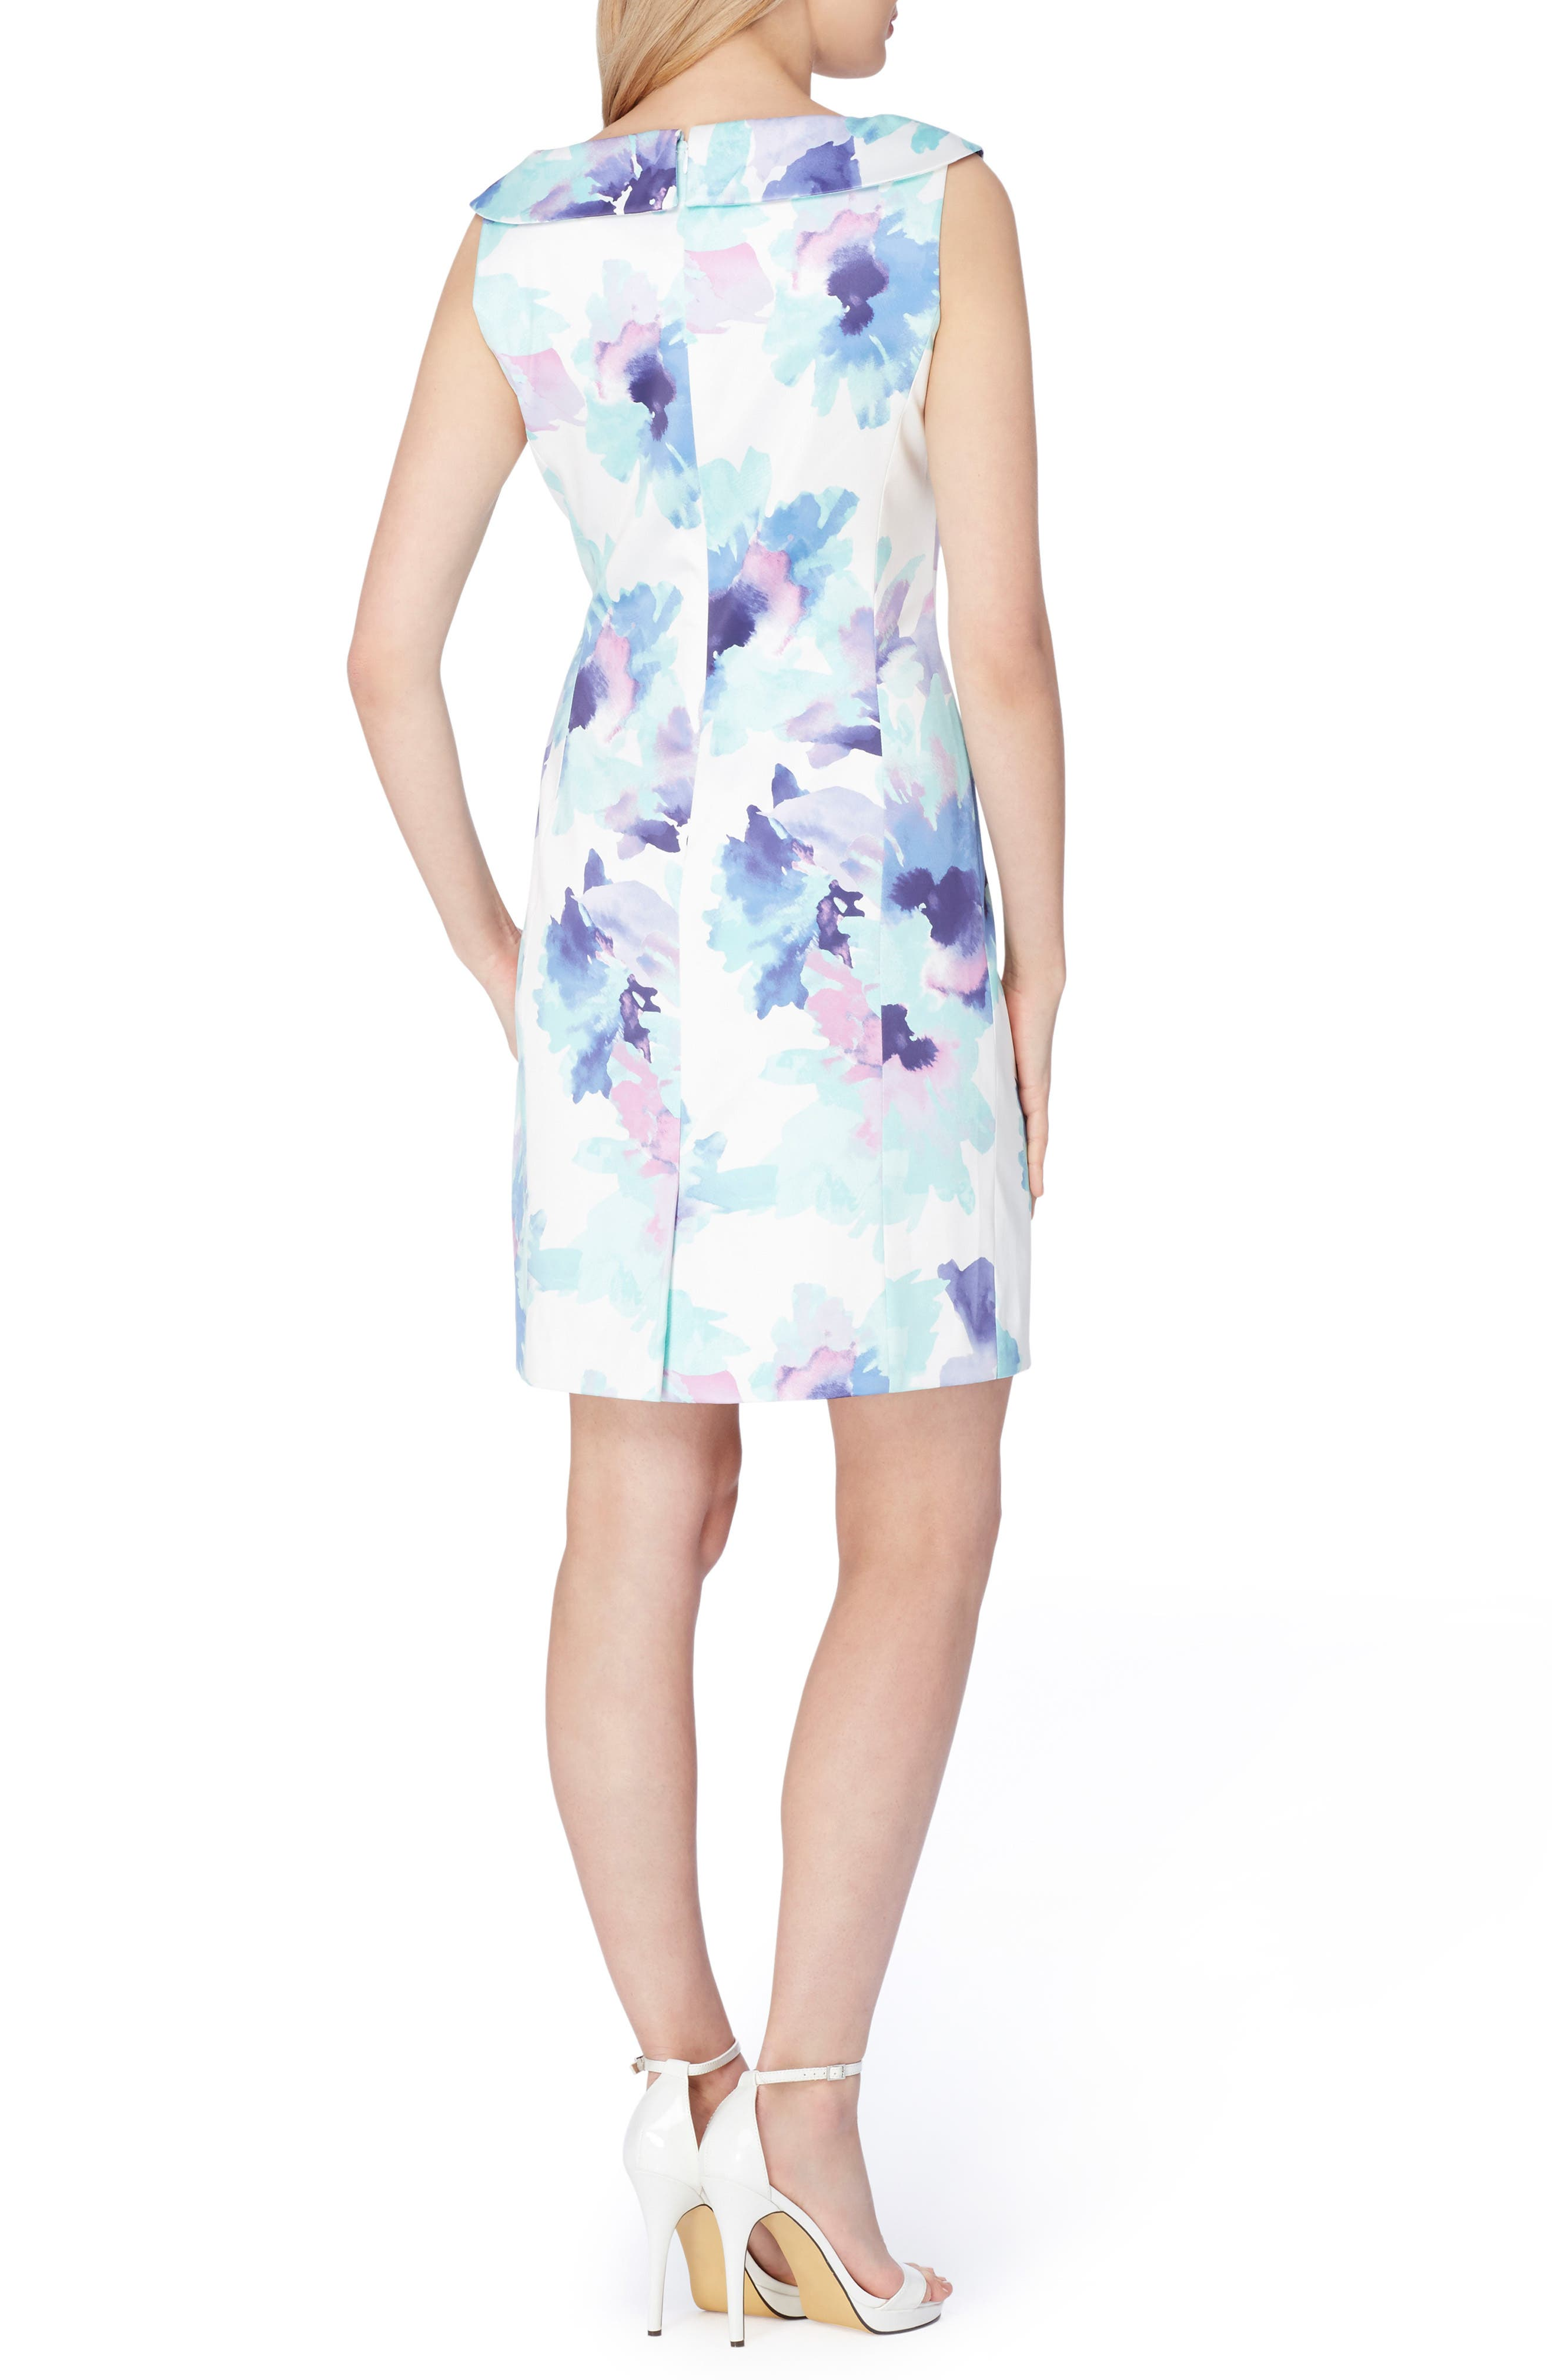 Stretch Satin Sheath Dress,                             Alternate thumbnail 2, color,                             Ivory/ Turquoise/ Royal